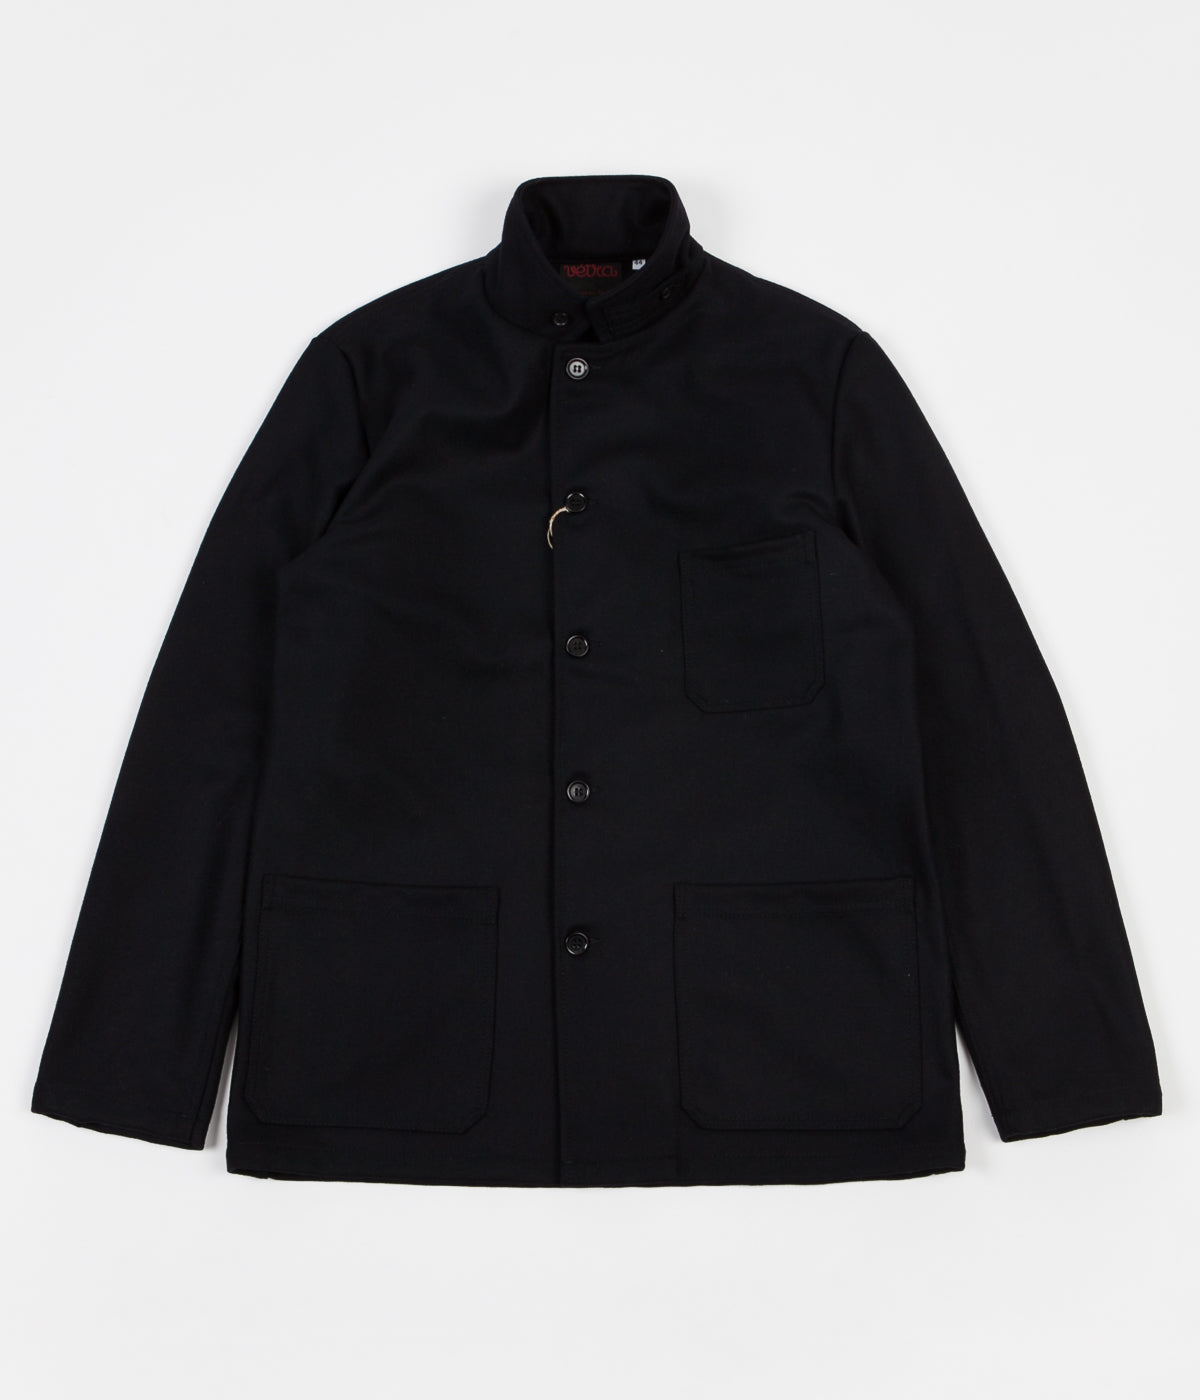 Vetra Workwear Button Collar Melton Jacket - Navy